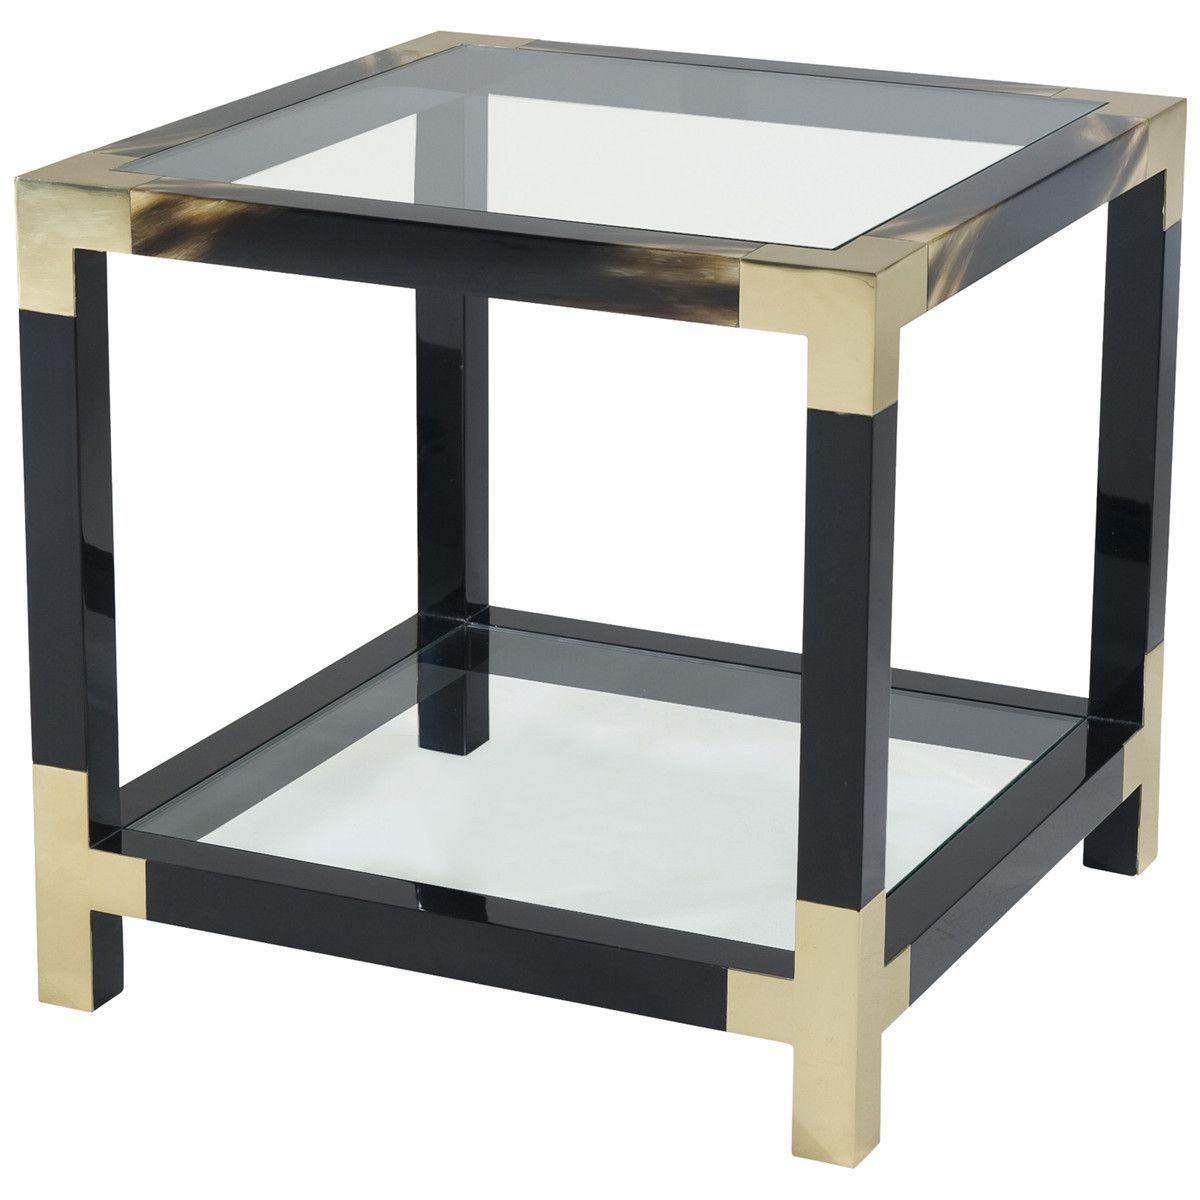 theodore alexander cutting edge occasional accent table square glass black lacquered and faux horn painted the inset top with brass edged corners legs joined stretchers used west